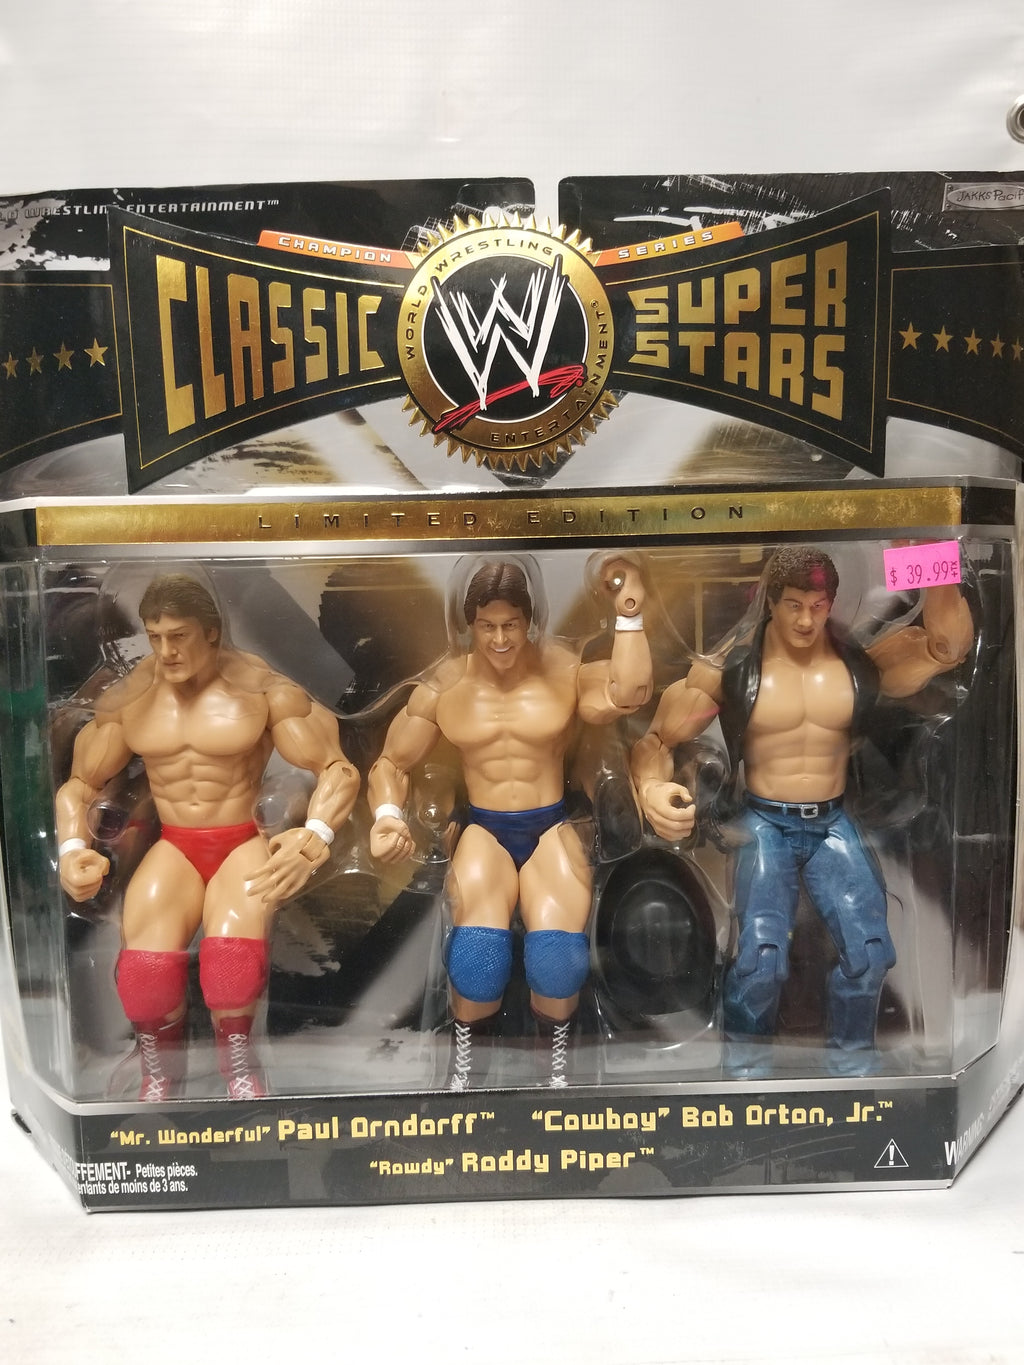 Jakks Pacific WWE Classics Superstars Paul Orndorff Rowdy Roddy Piper & Bob Orton, Jr